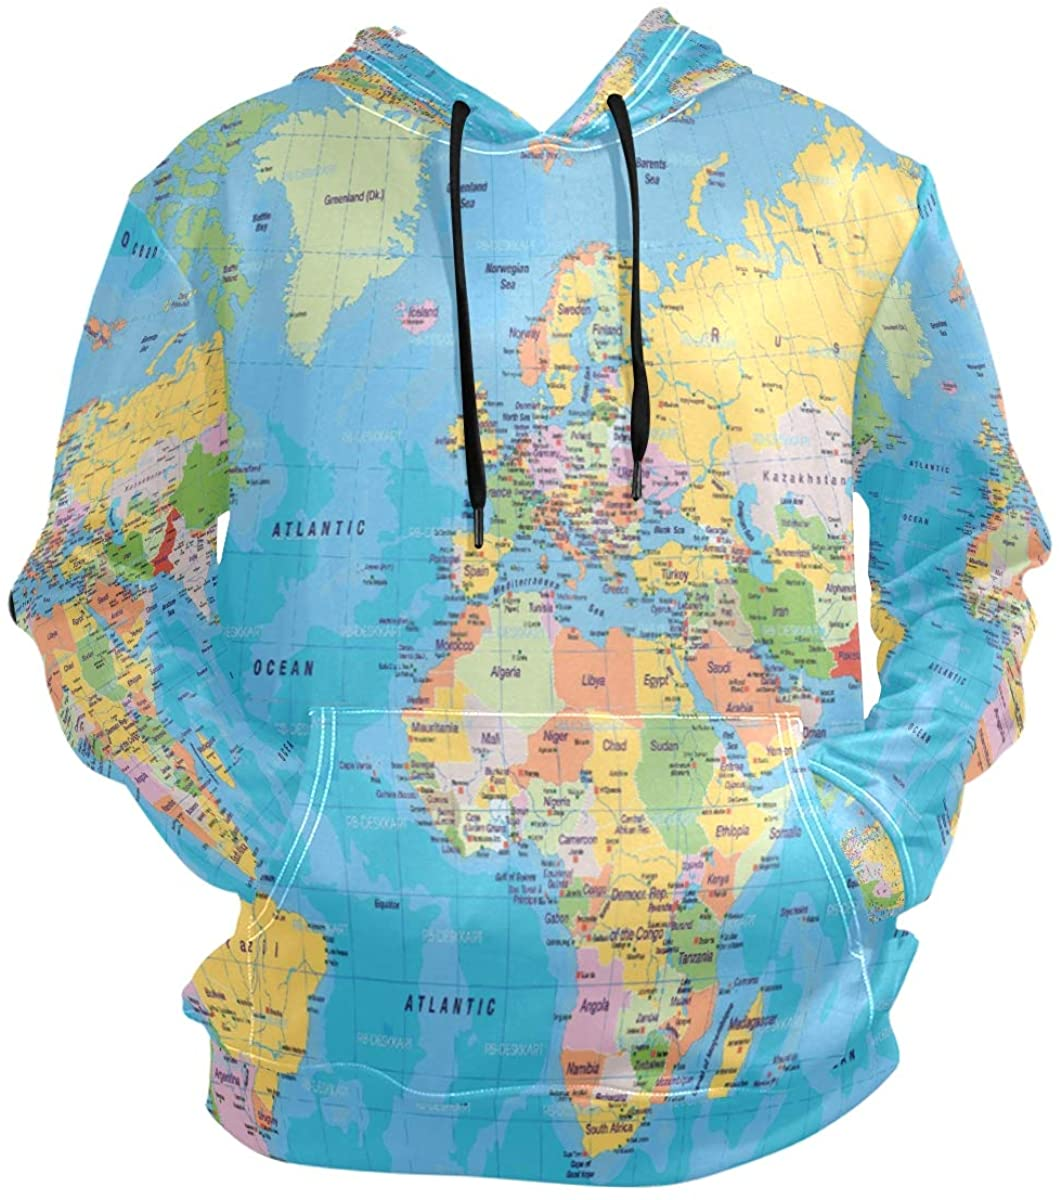 SLHFPX 3D Hoodie World Map Pullover Hooded Sweatshirts Long Sleeve Shirt